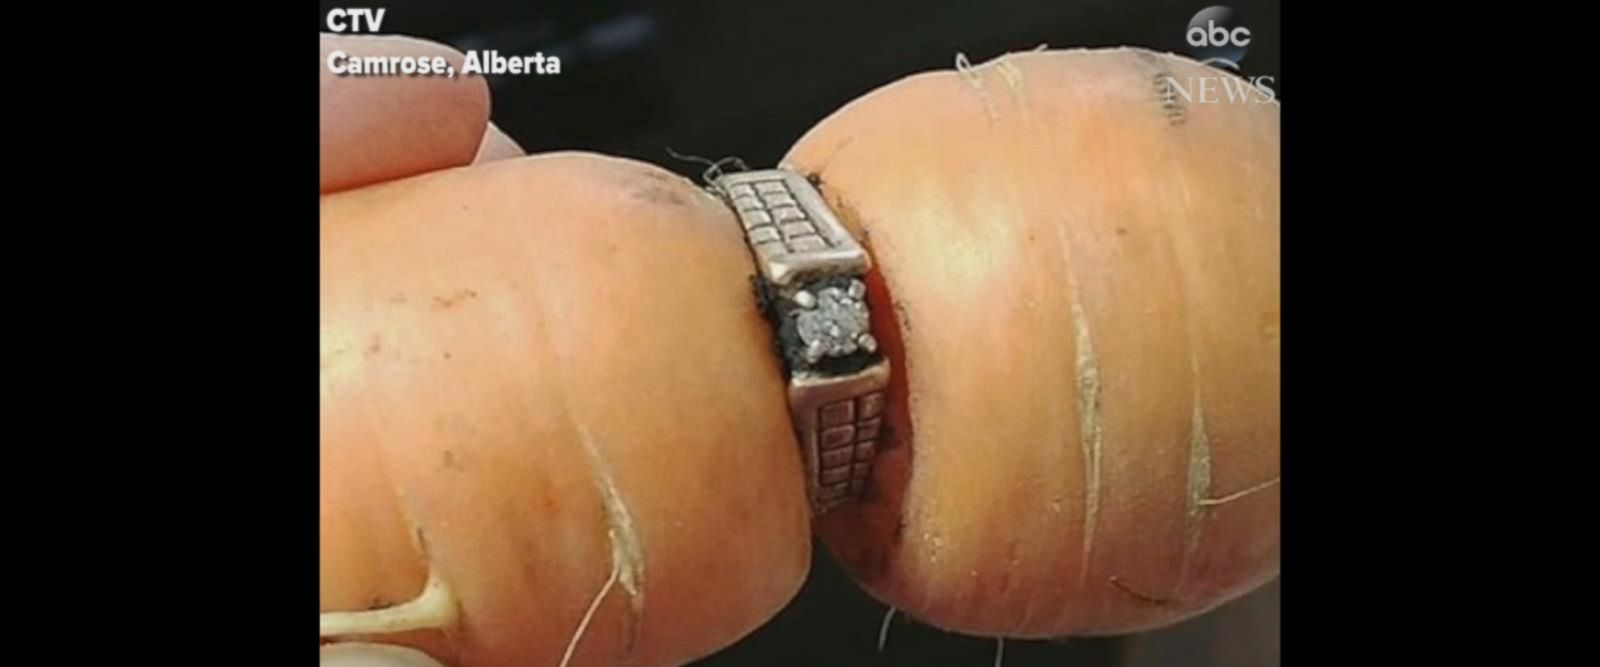 VIDEO: Lost engagement ring turns up in family's garden after 13 years